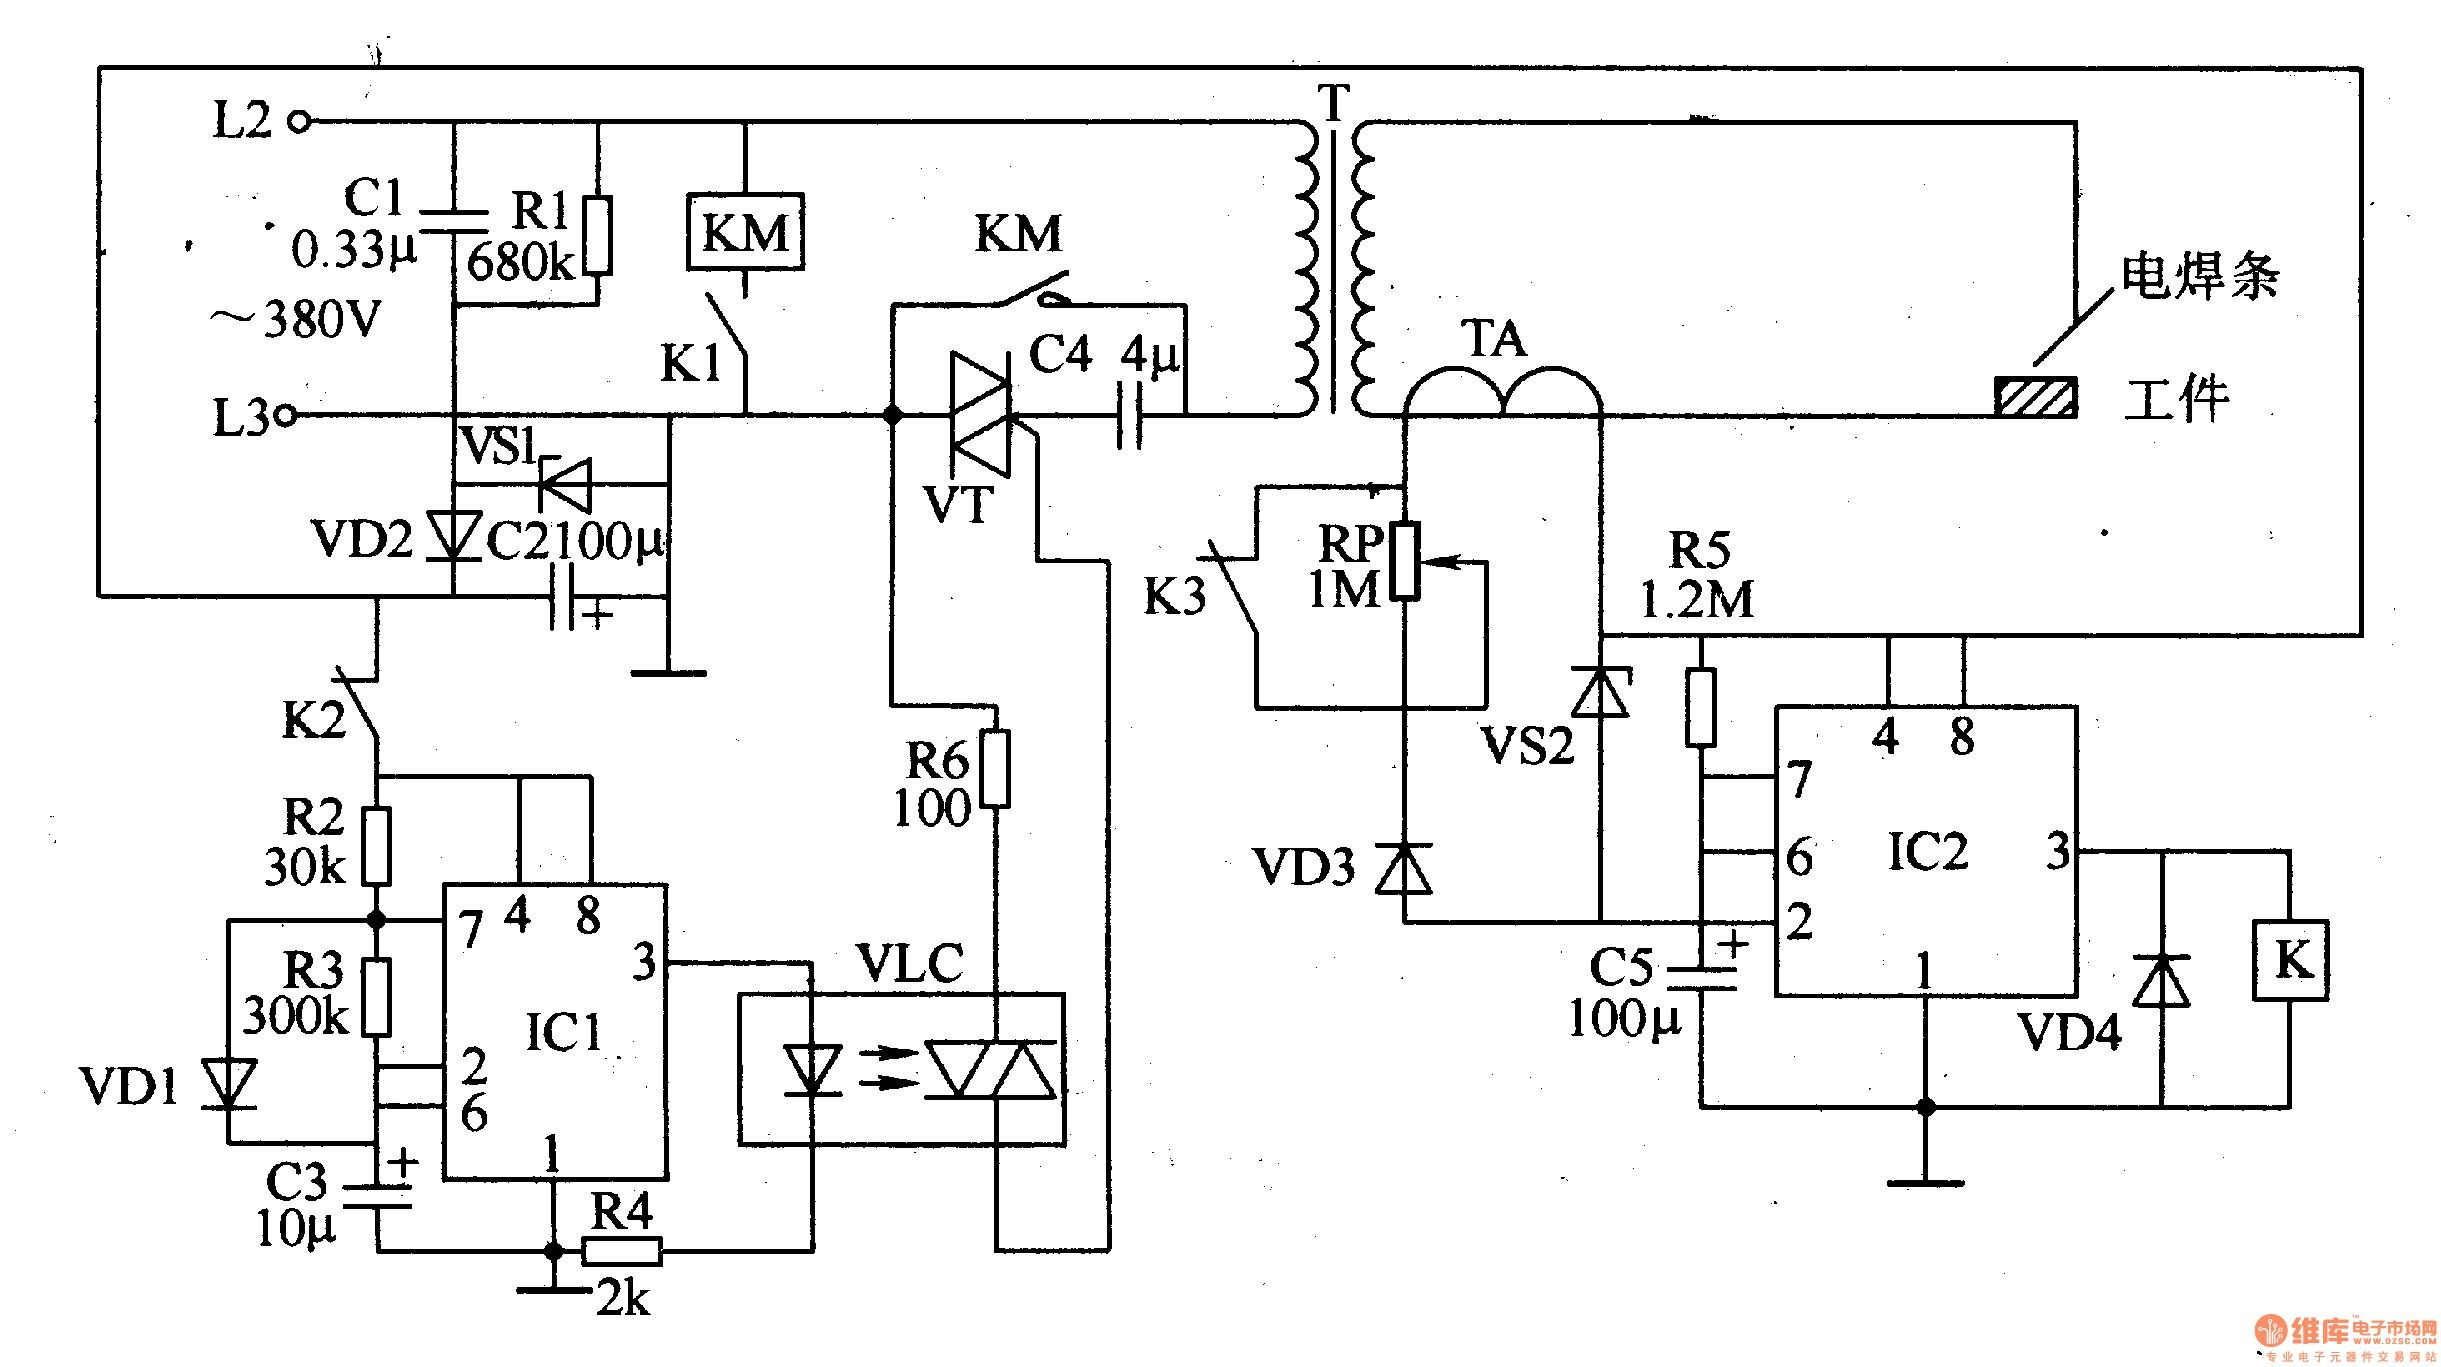 hight resolution of lovely 3 phase welding machine circuit diagram inside wiring pdf 3 phase welding machine circuit diagram pdf 3 phase welding machine diagram